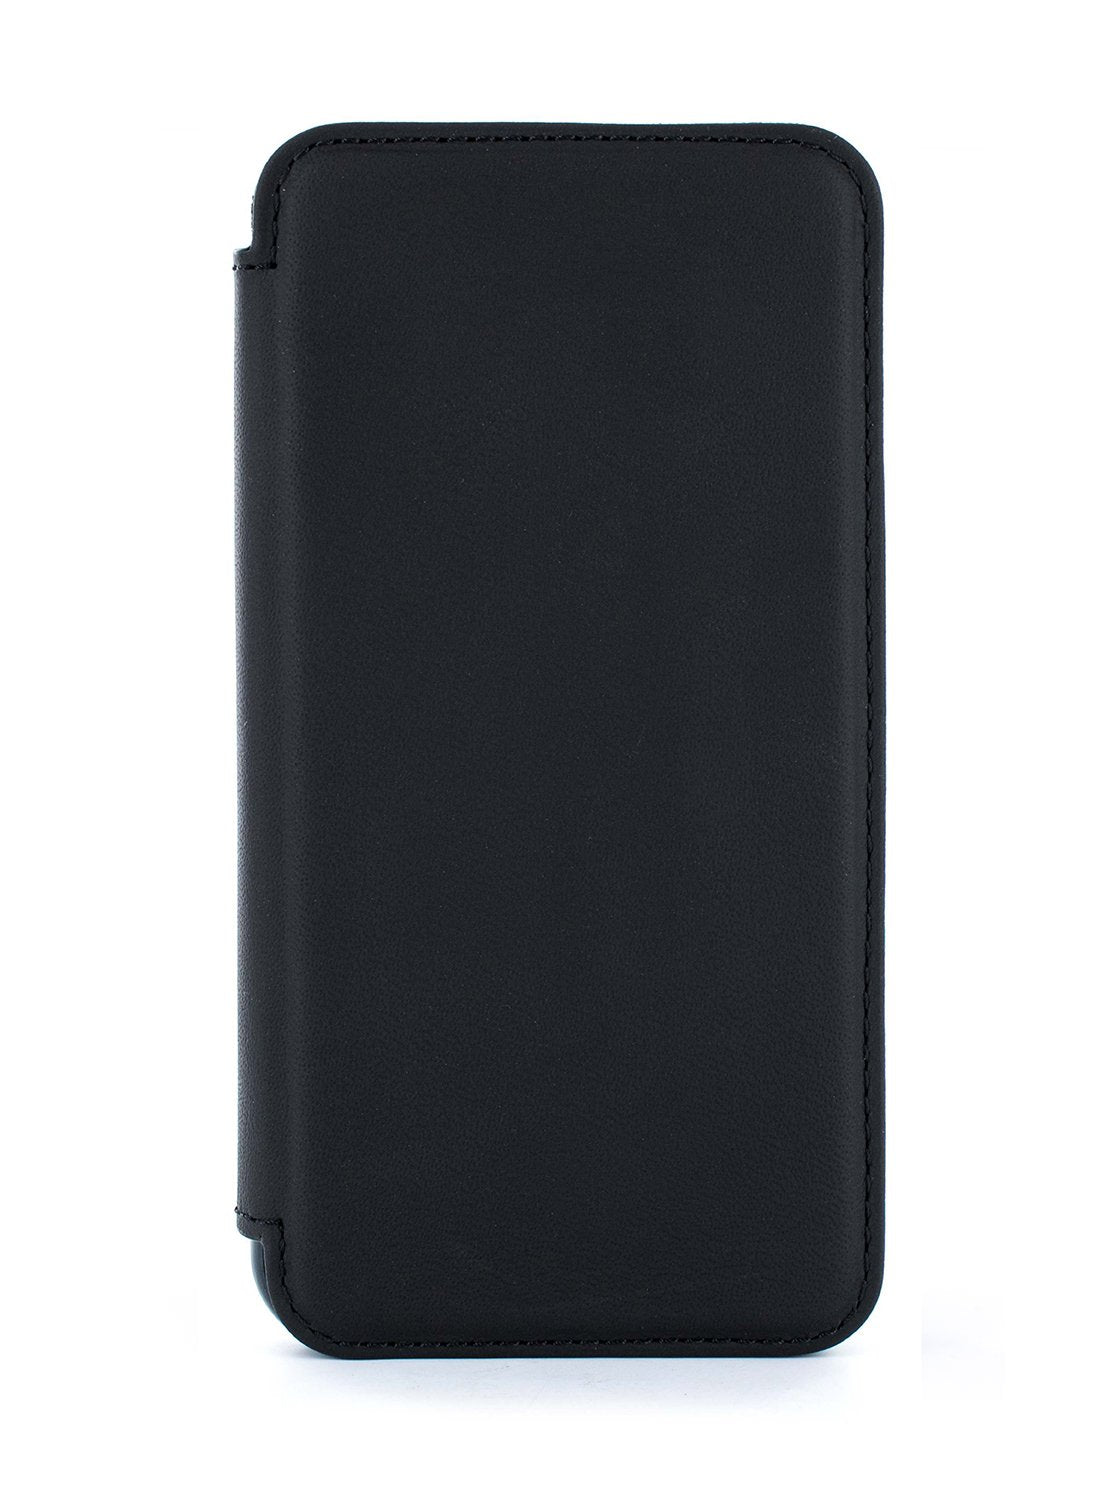 BLAKE Luxury Leather Case for iPhone XS Max - BELUGA (BLACK)/GUNMETAL